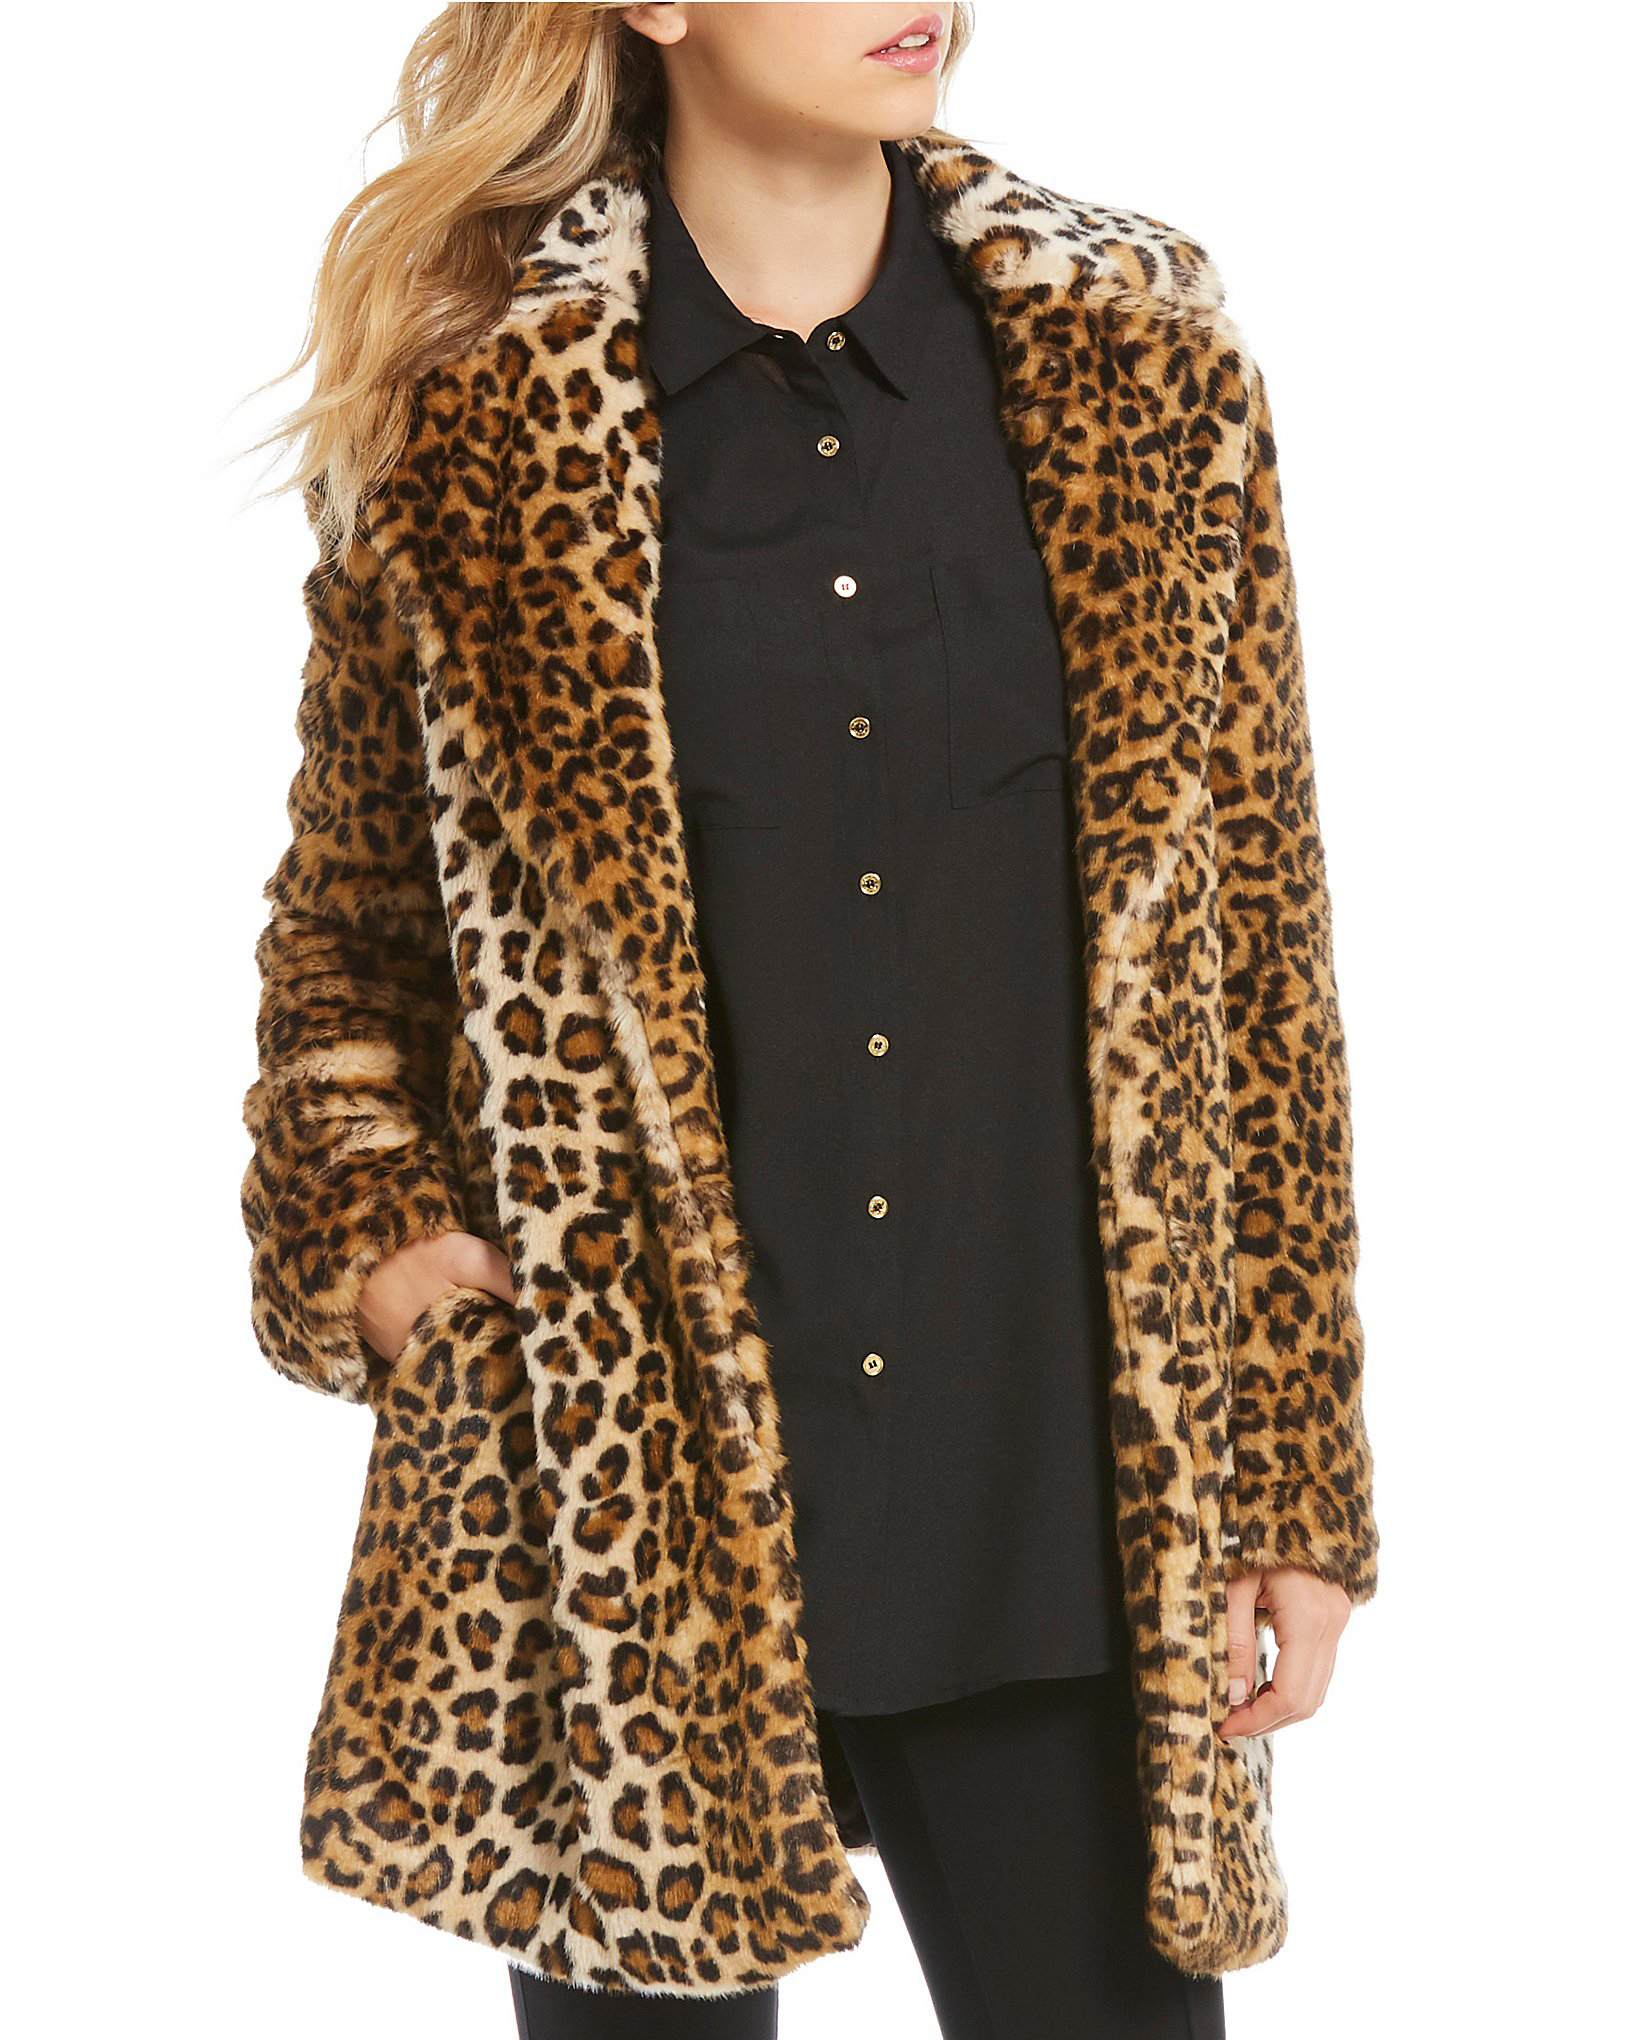 Faux fur sleeve trim keeps hands warm in fun fashion. Choose leopard-print faux fur trim to make a statement in any situation. From casual to dressy, faux fur trim complements any ensemble. Discover the pizzazz of faux fur coats by INC International Concepts. Take a walk on the edgy side in faux fur jackets by Style&co. Release your inner vixen with coats from Me Jane.